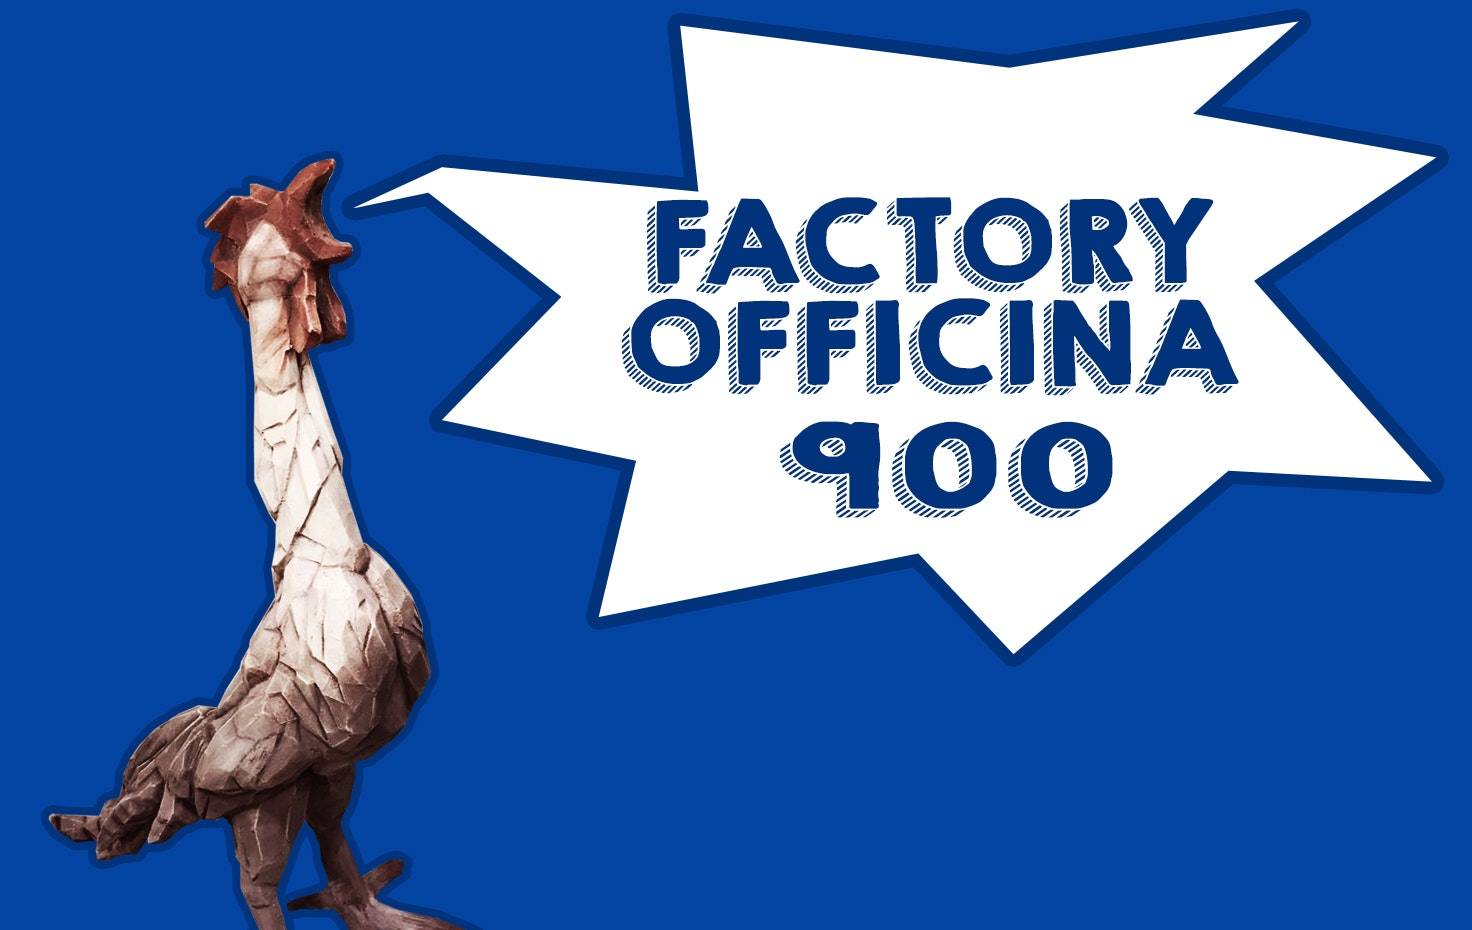 Factory Officina 900